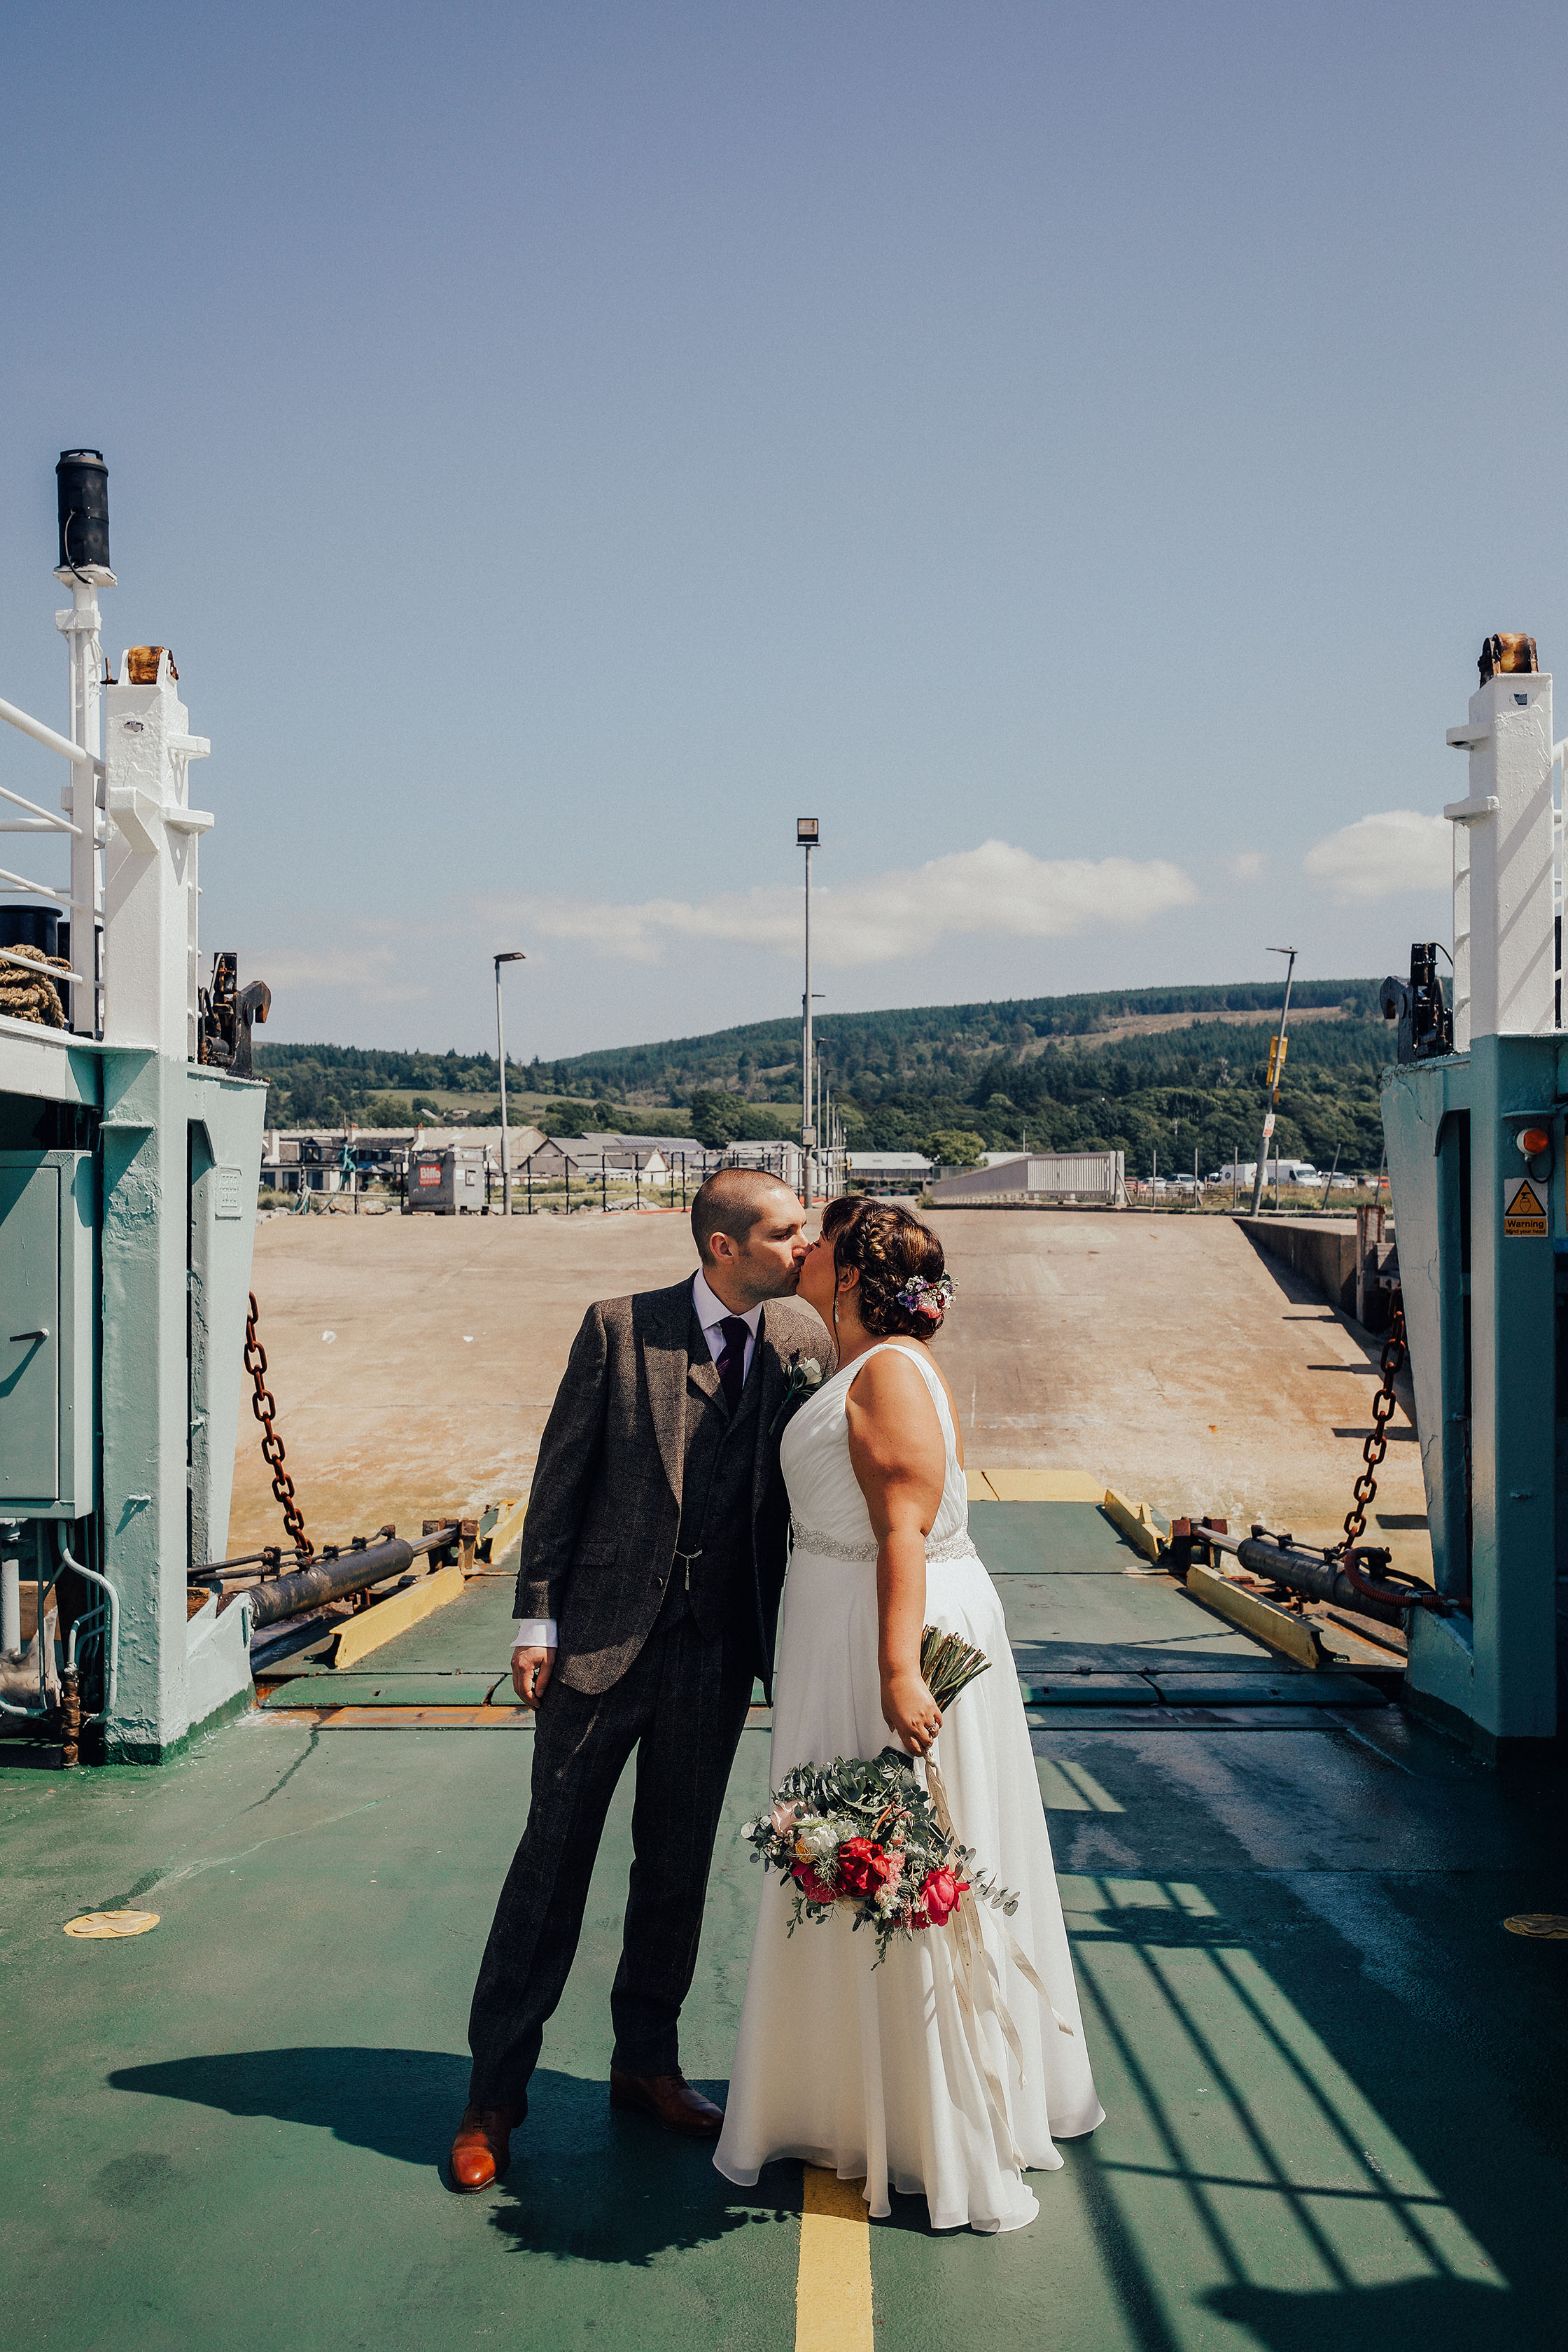 SCOTTISH_ELOPEMENT_PHOTOGRAPHER_PJ_PHILLIPS_PHOTOGRAPHY_99.jpg